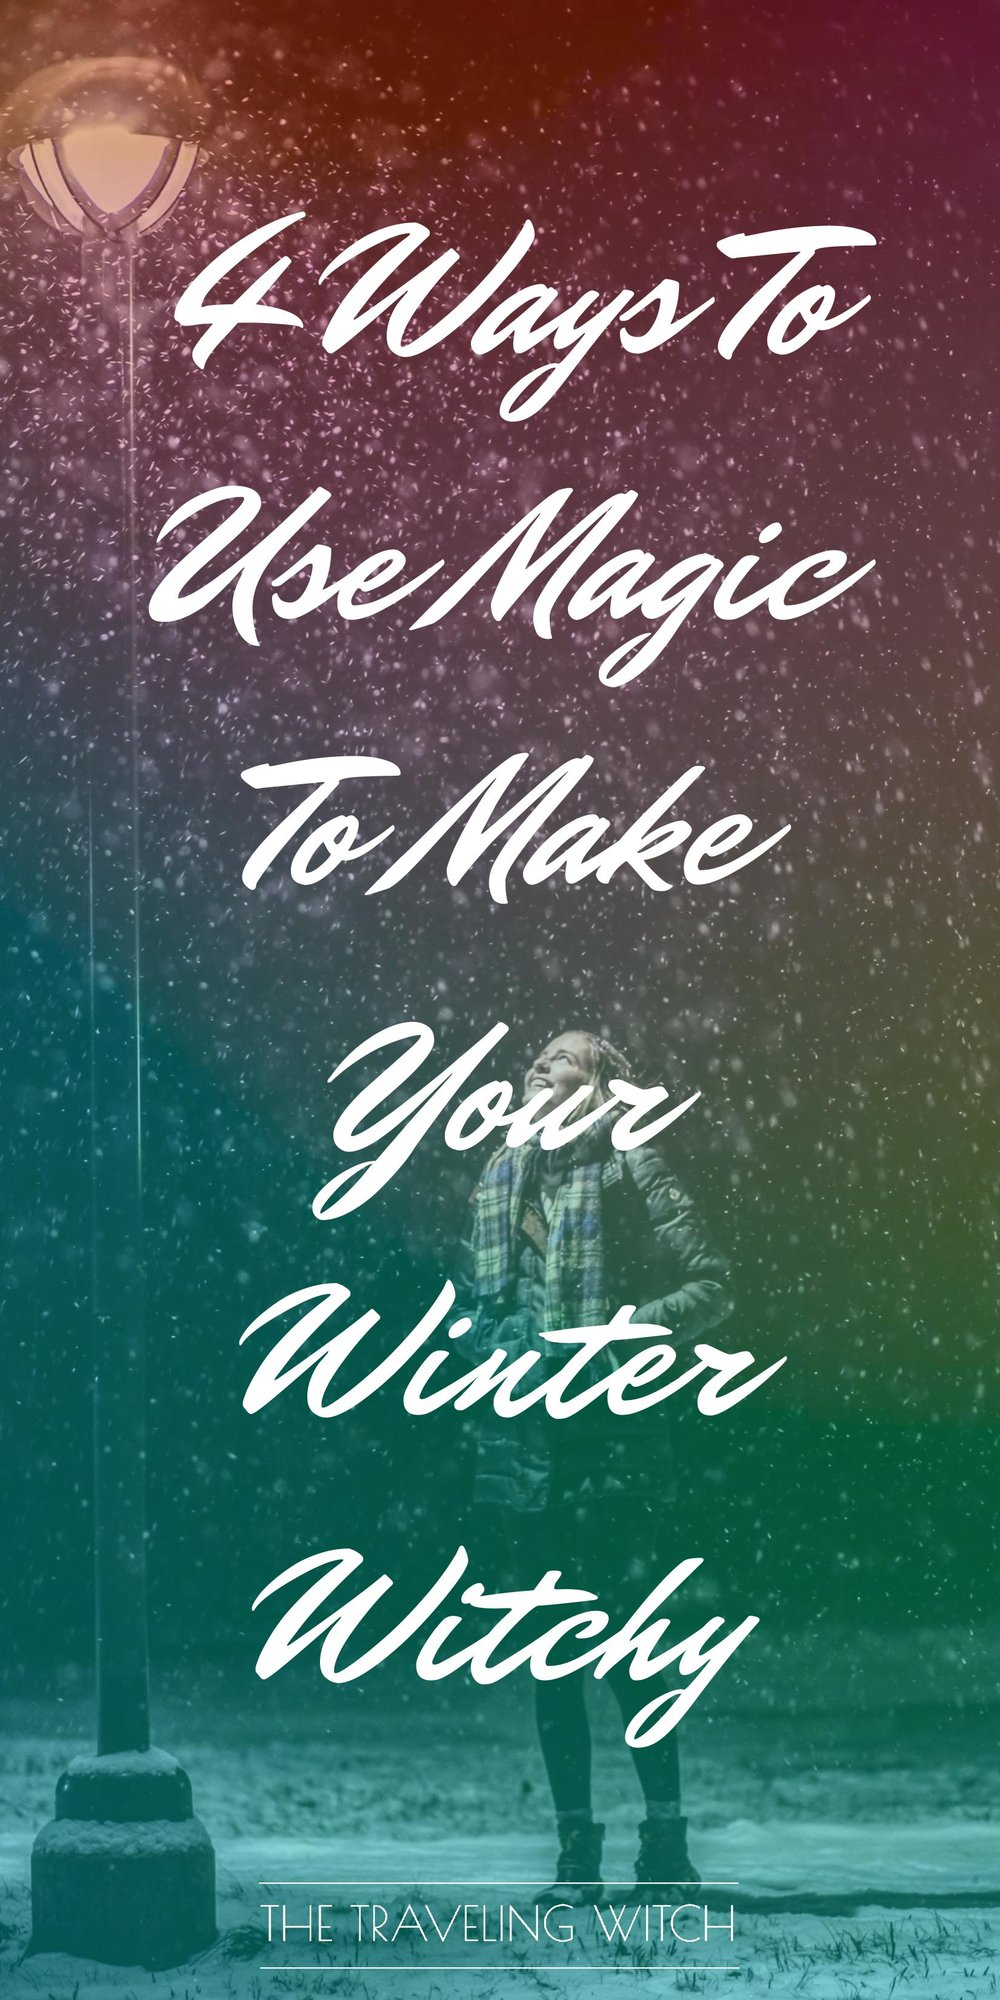 4 Ways To Use Magic To Make Your Winter Witchy // Witchcraft // The Traveling Witch